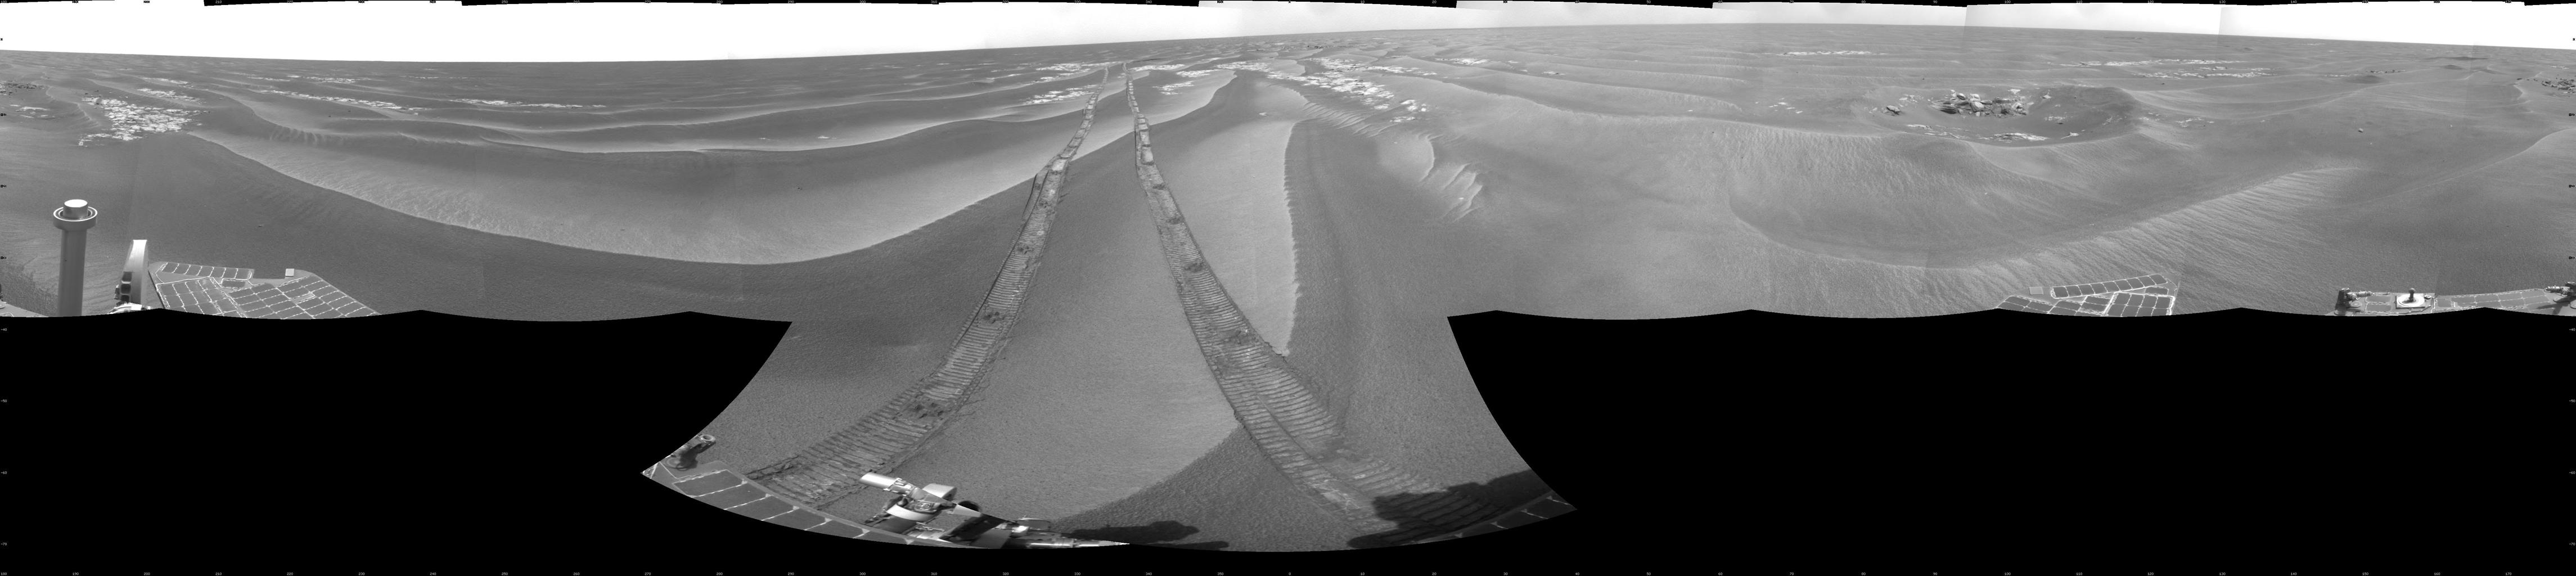 NASA's Opportunity had driven 62.5 meters (205 feet) that sol, southward away from an outcrop called 'Penrhyn,' which the rover had been examining for a few sols, and toward a crater called 'Adventure.' This is a cylindrical projection.